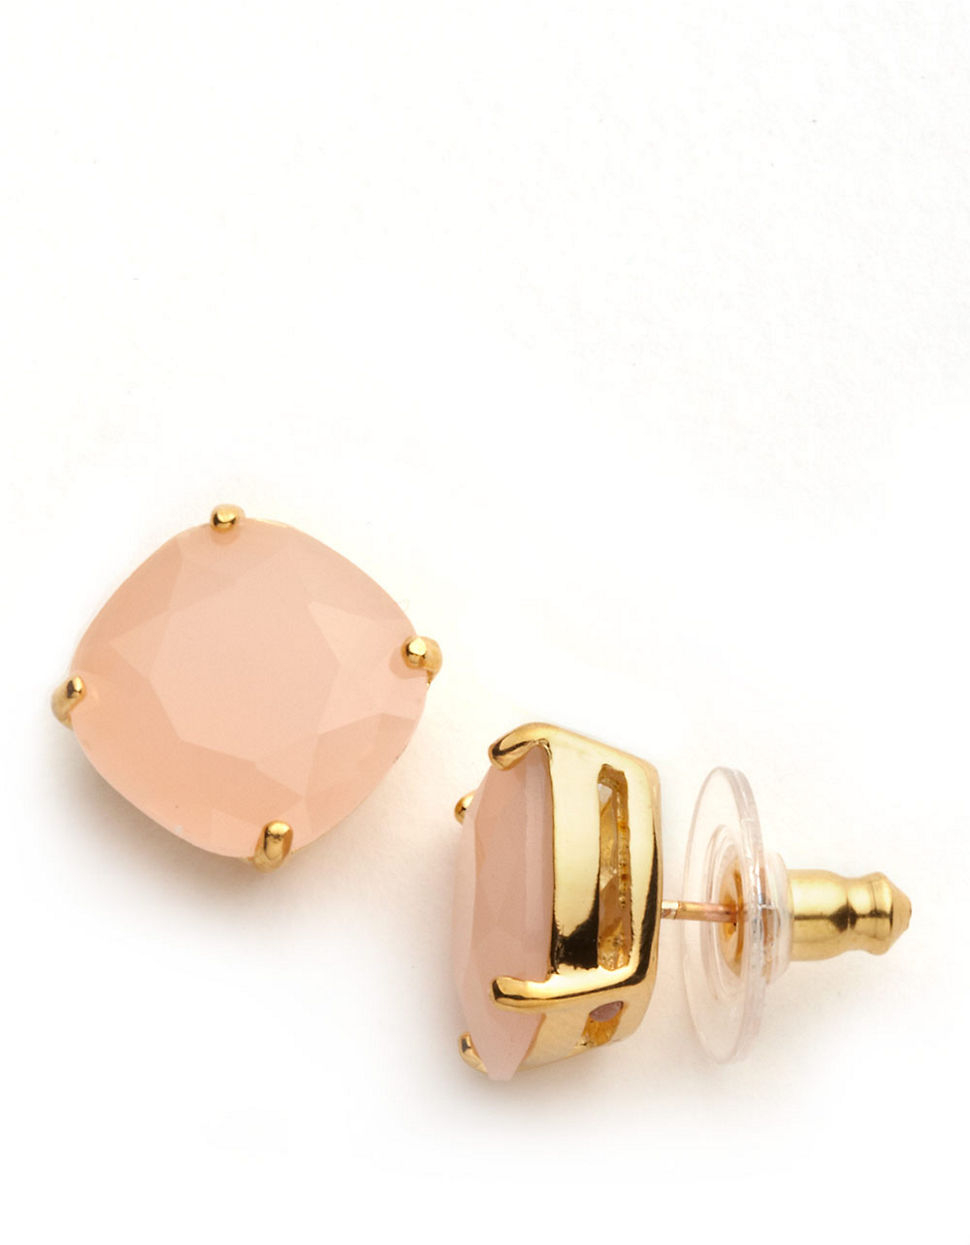 Kate Spade Pink Earrings Choice Image - Jewelry Design Examples